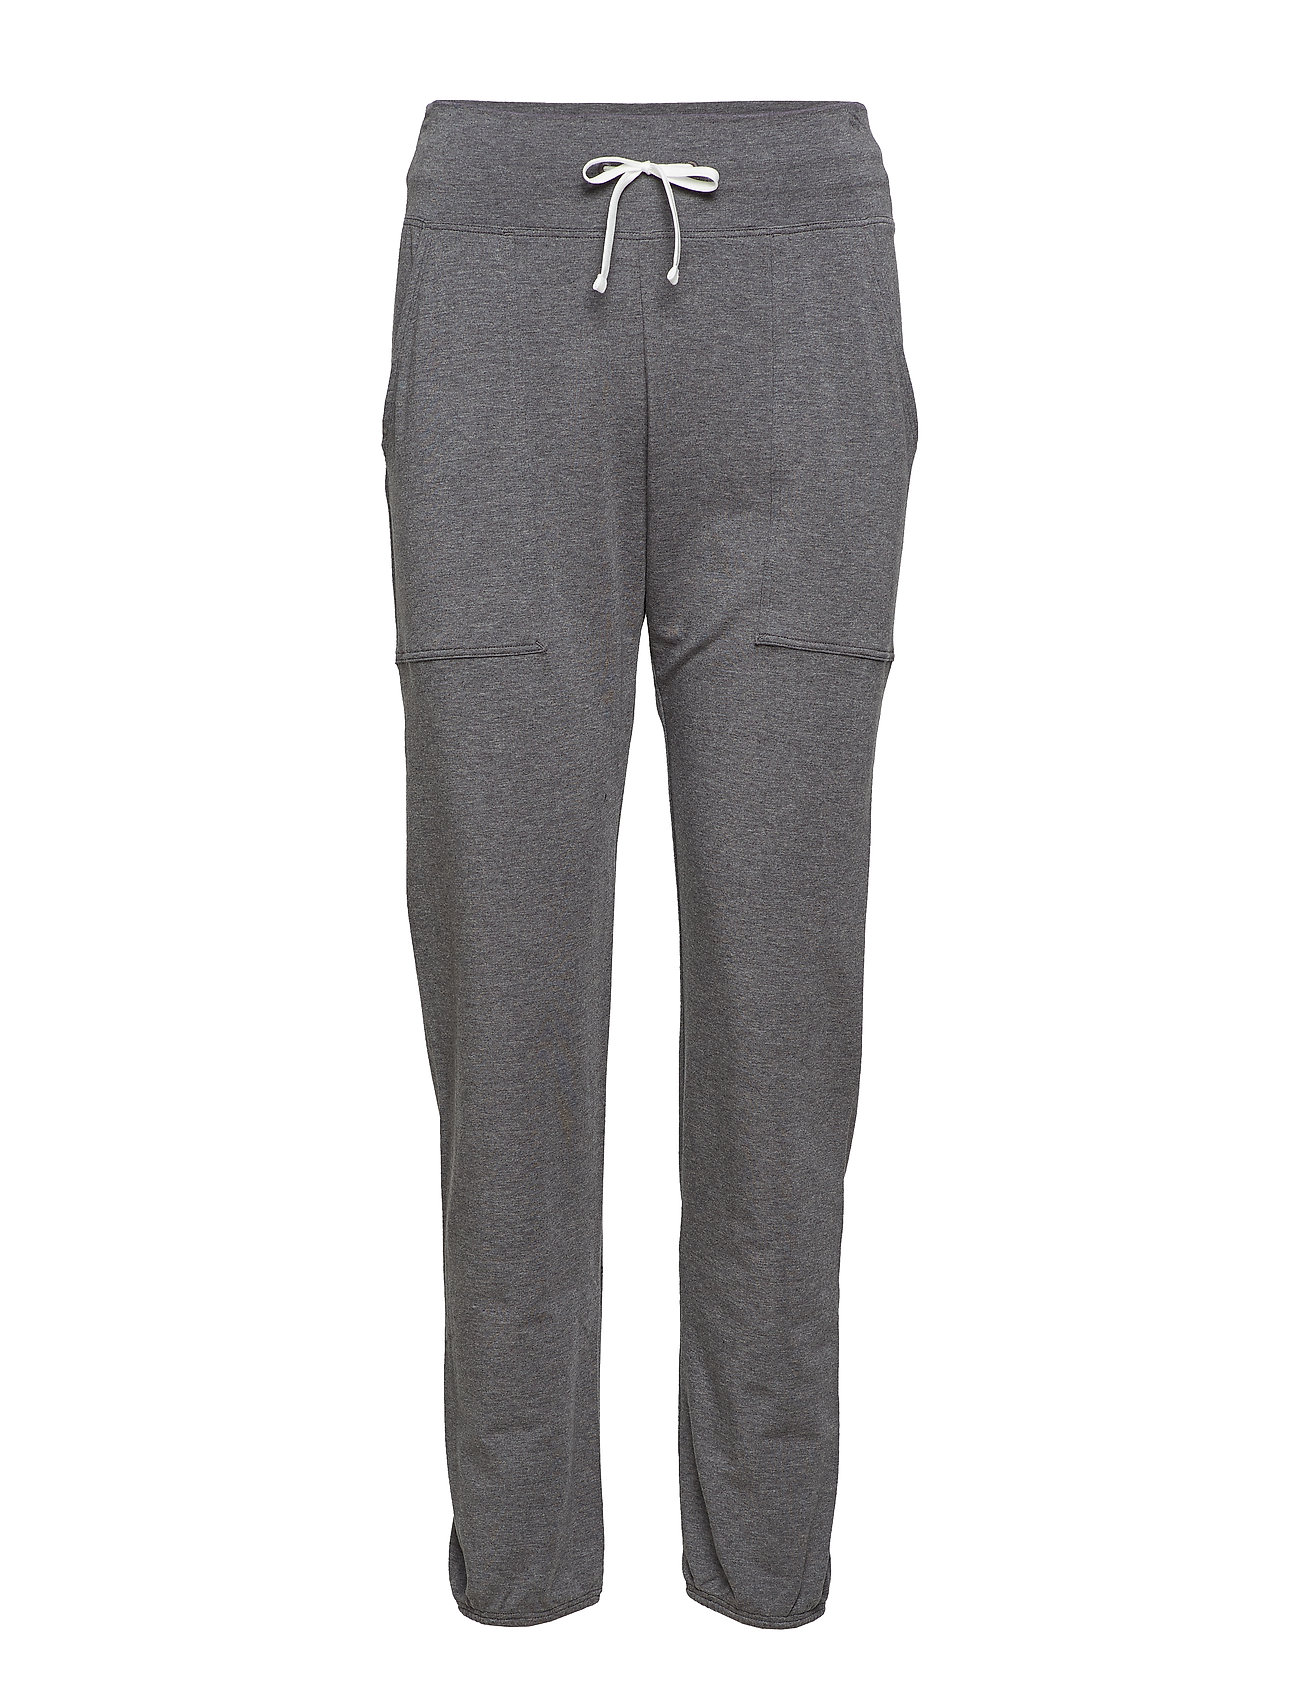 Filippa K Soft Sport Light Jogger Pants Sweatpants